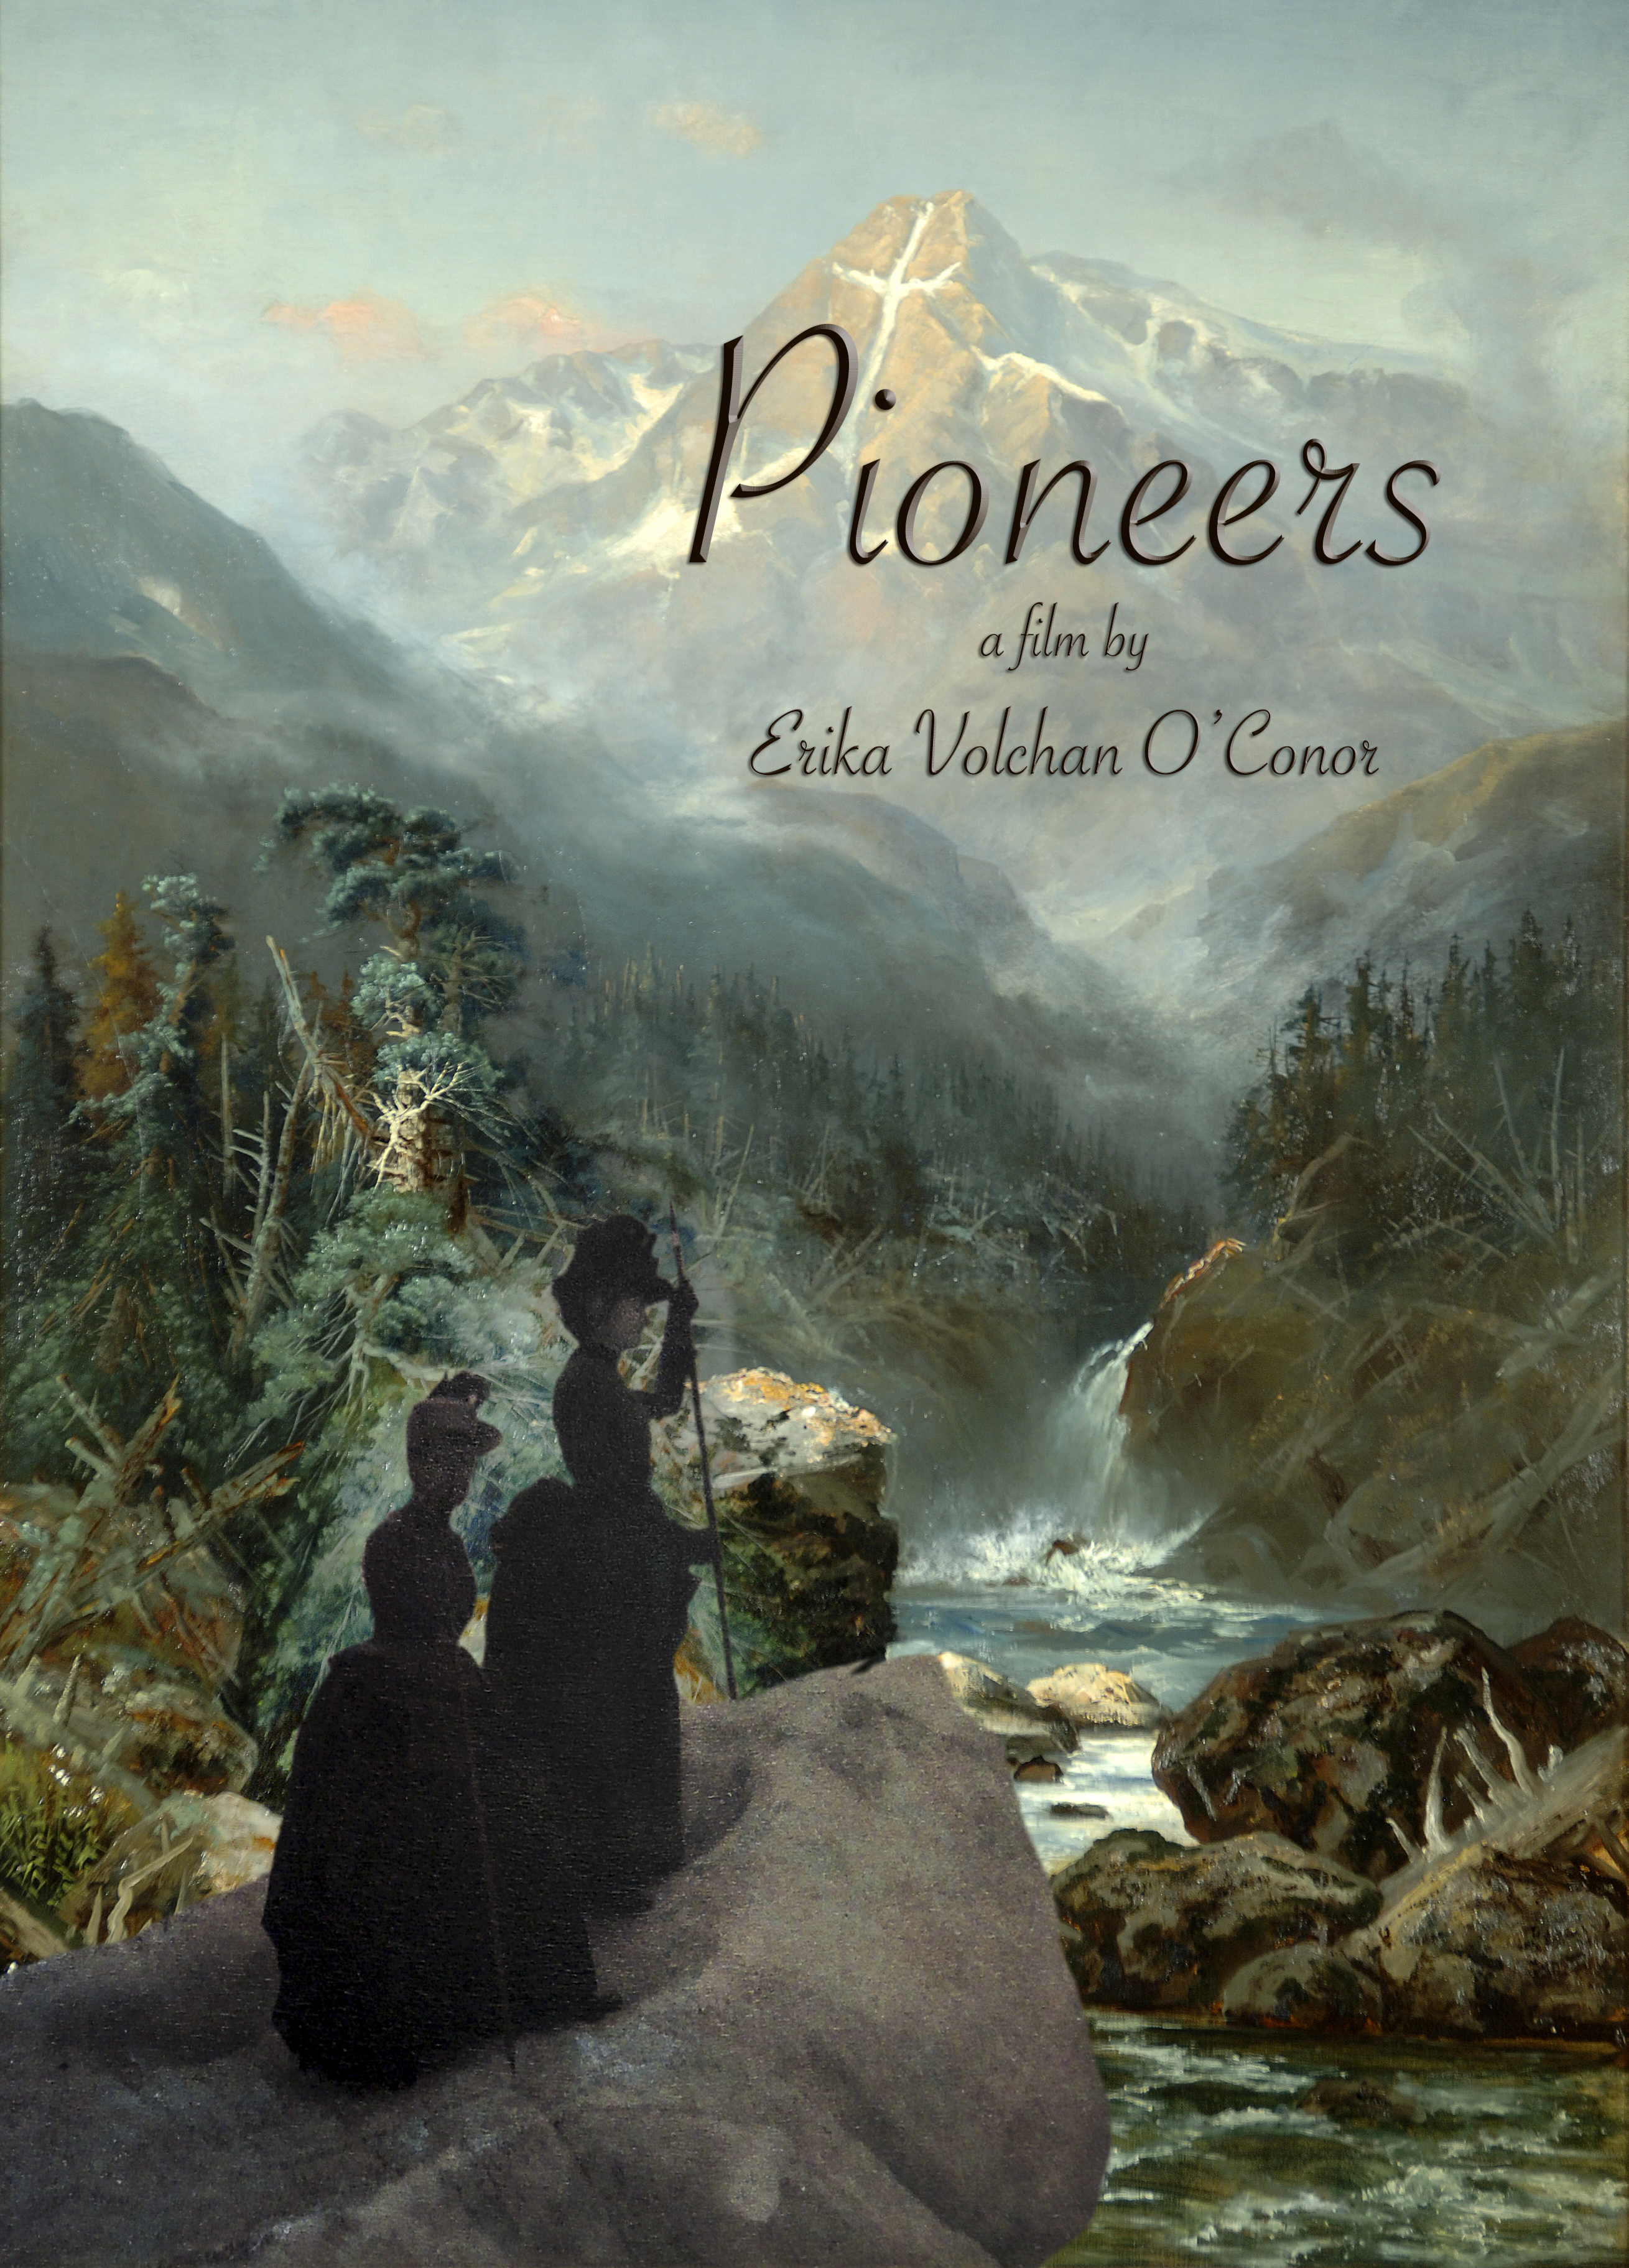 Pioneers poster